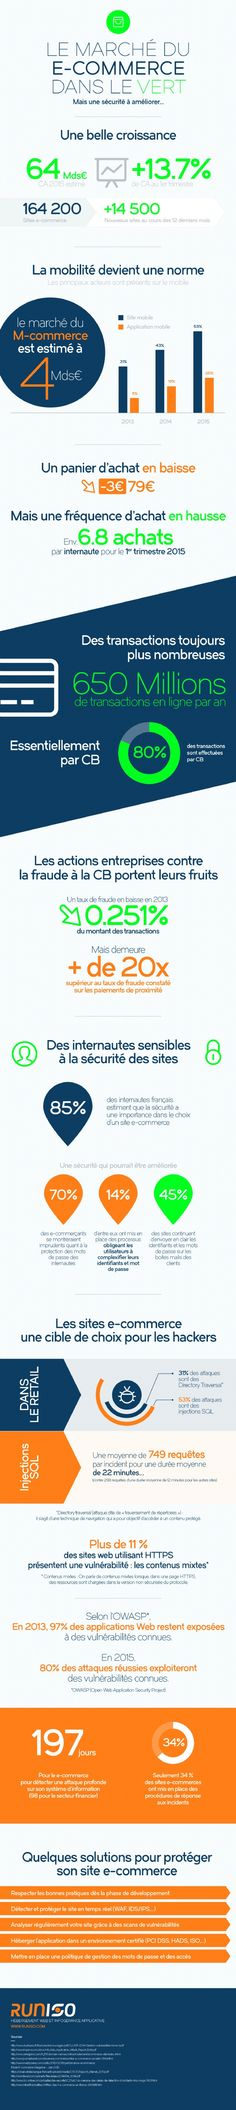 securite-sites-ecommerce-France